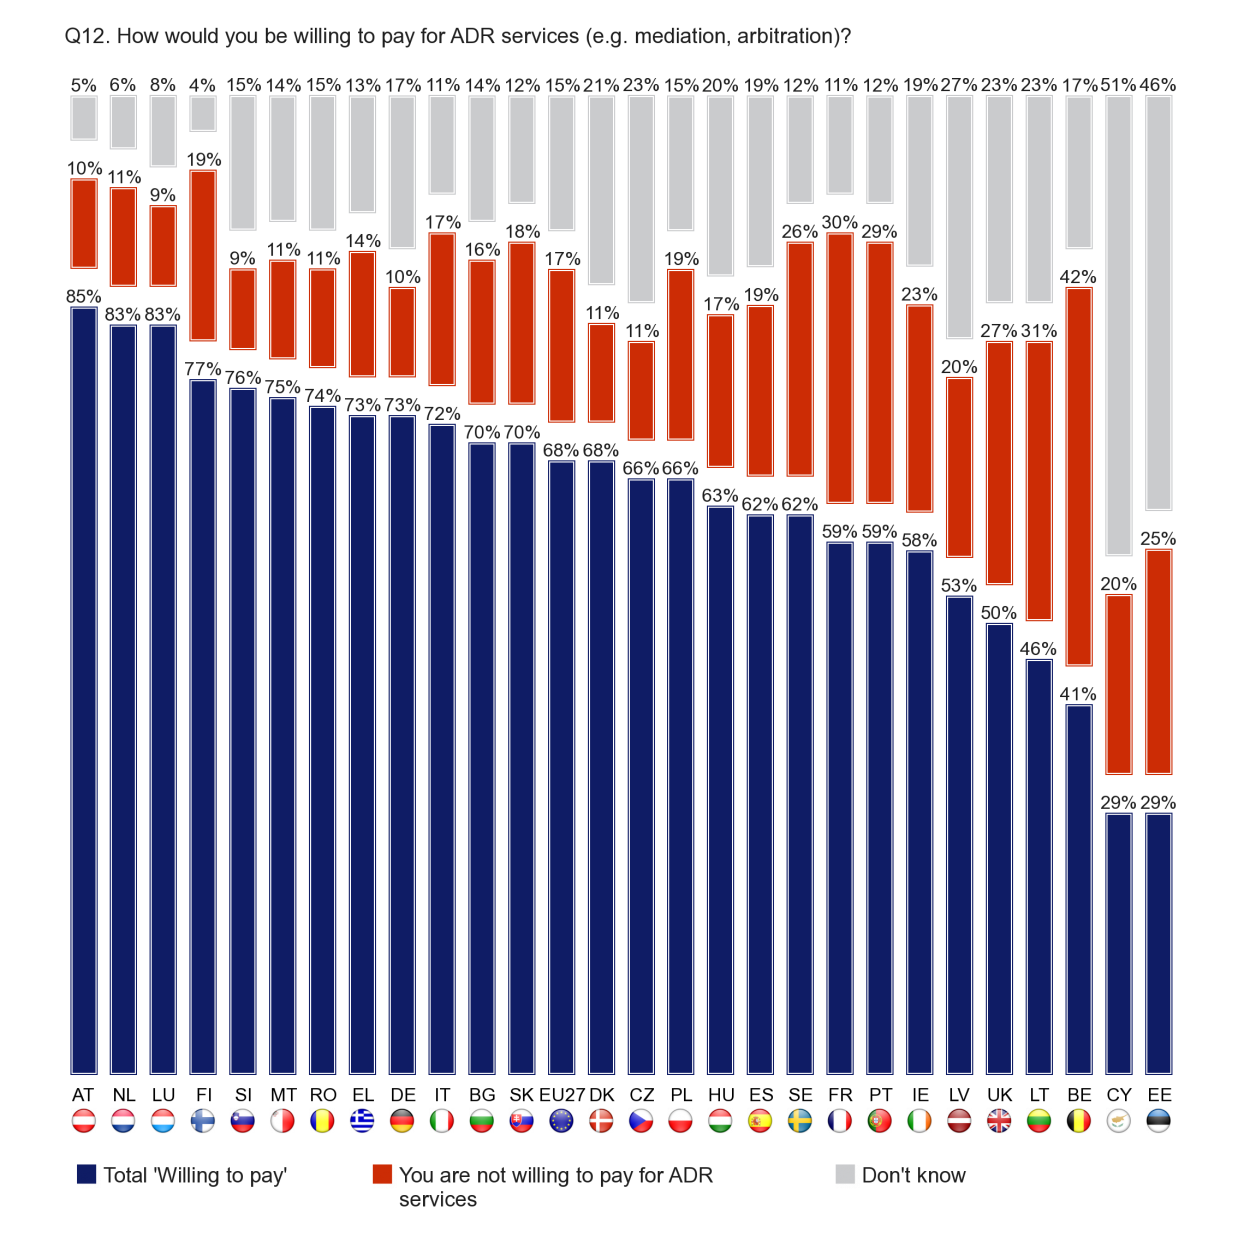 FLASH EUROBAROMETER Alternative Dispute Resolution Companies in Austria (85), the Netherlands (83) and Luxembourg (83) are the most likely to be willing to pay for ADR services.